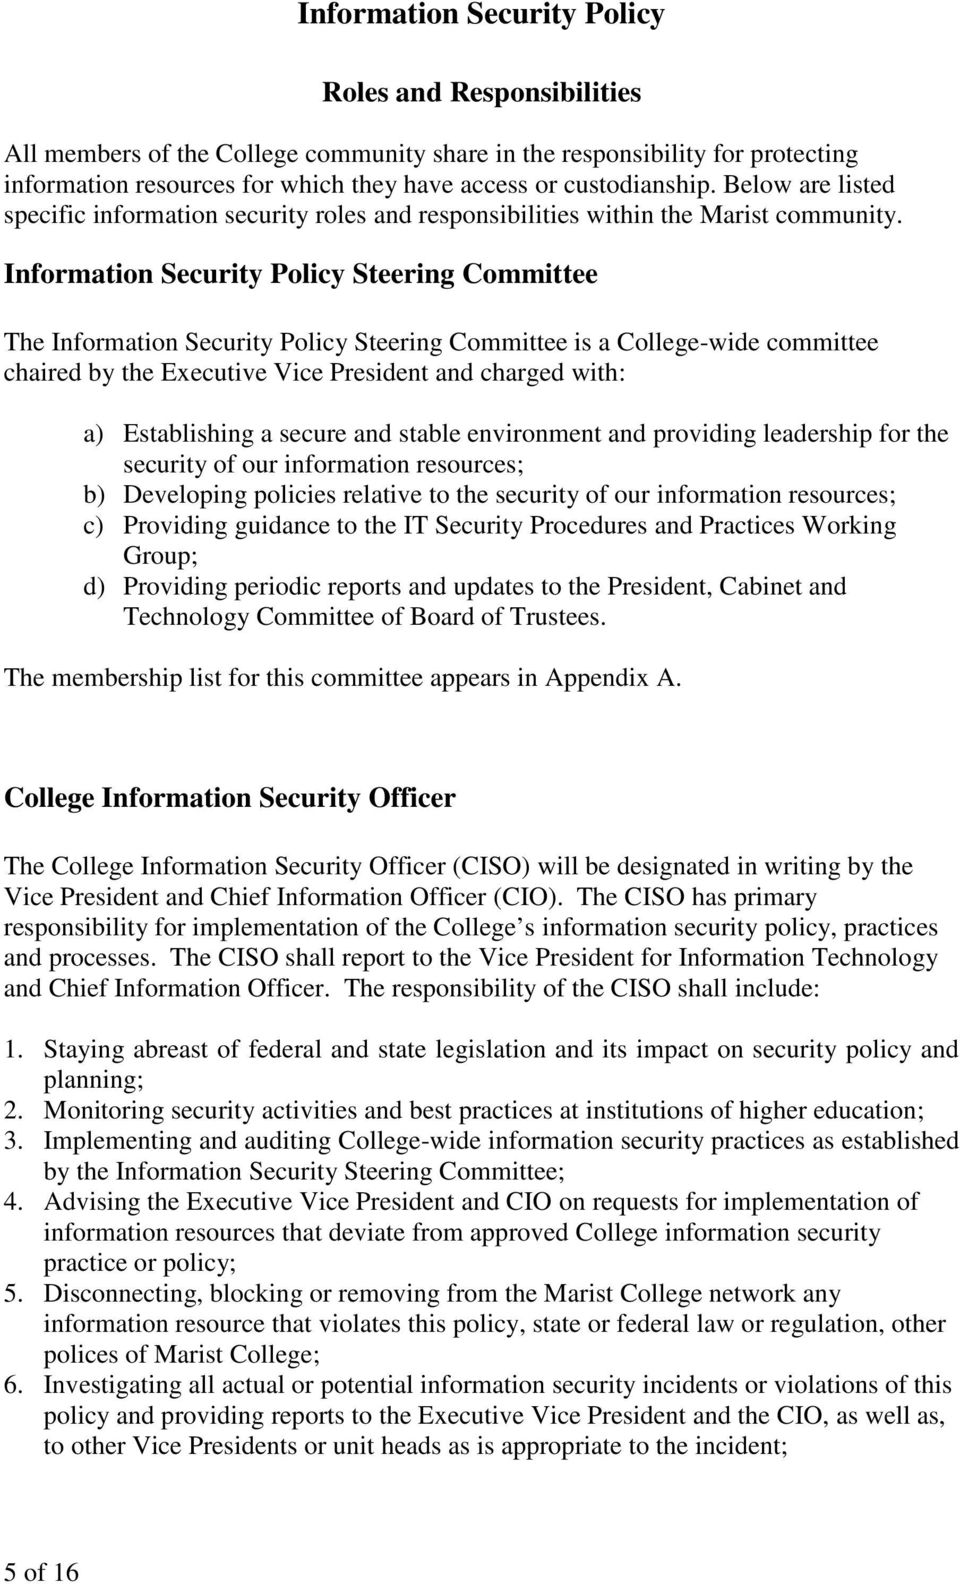 Information Security Policy Steering Committee The Information Security Policy Steering Committee is a College-wide committee chaired by the Executive Vice President and charged with: a) Establishing